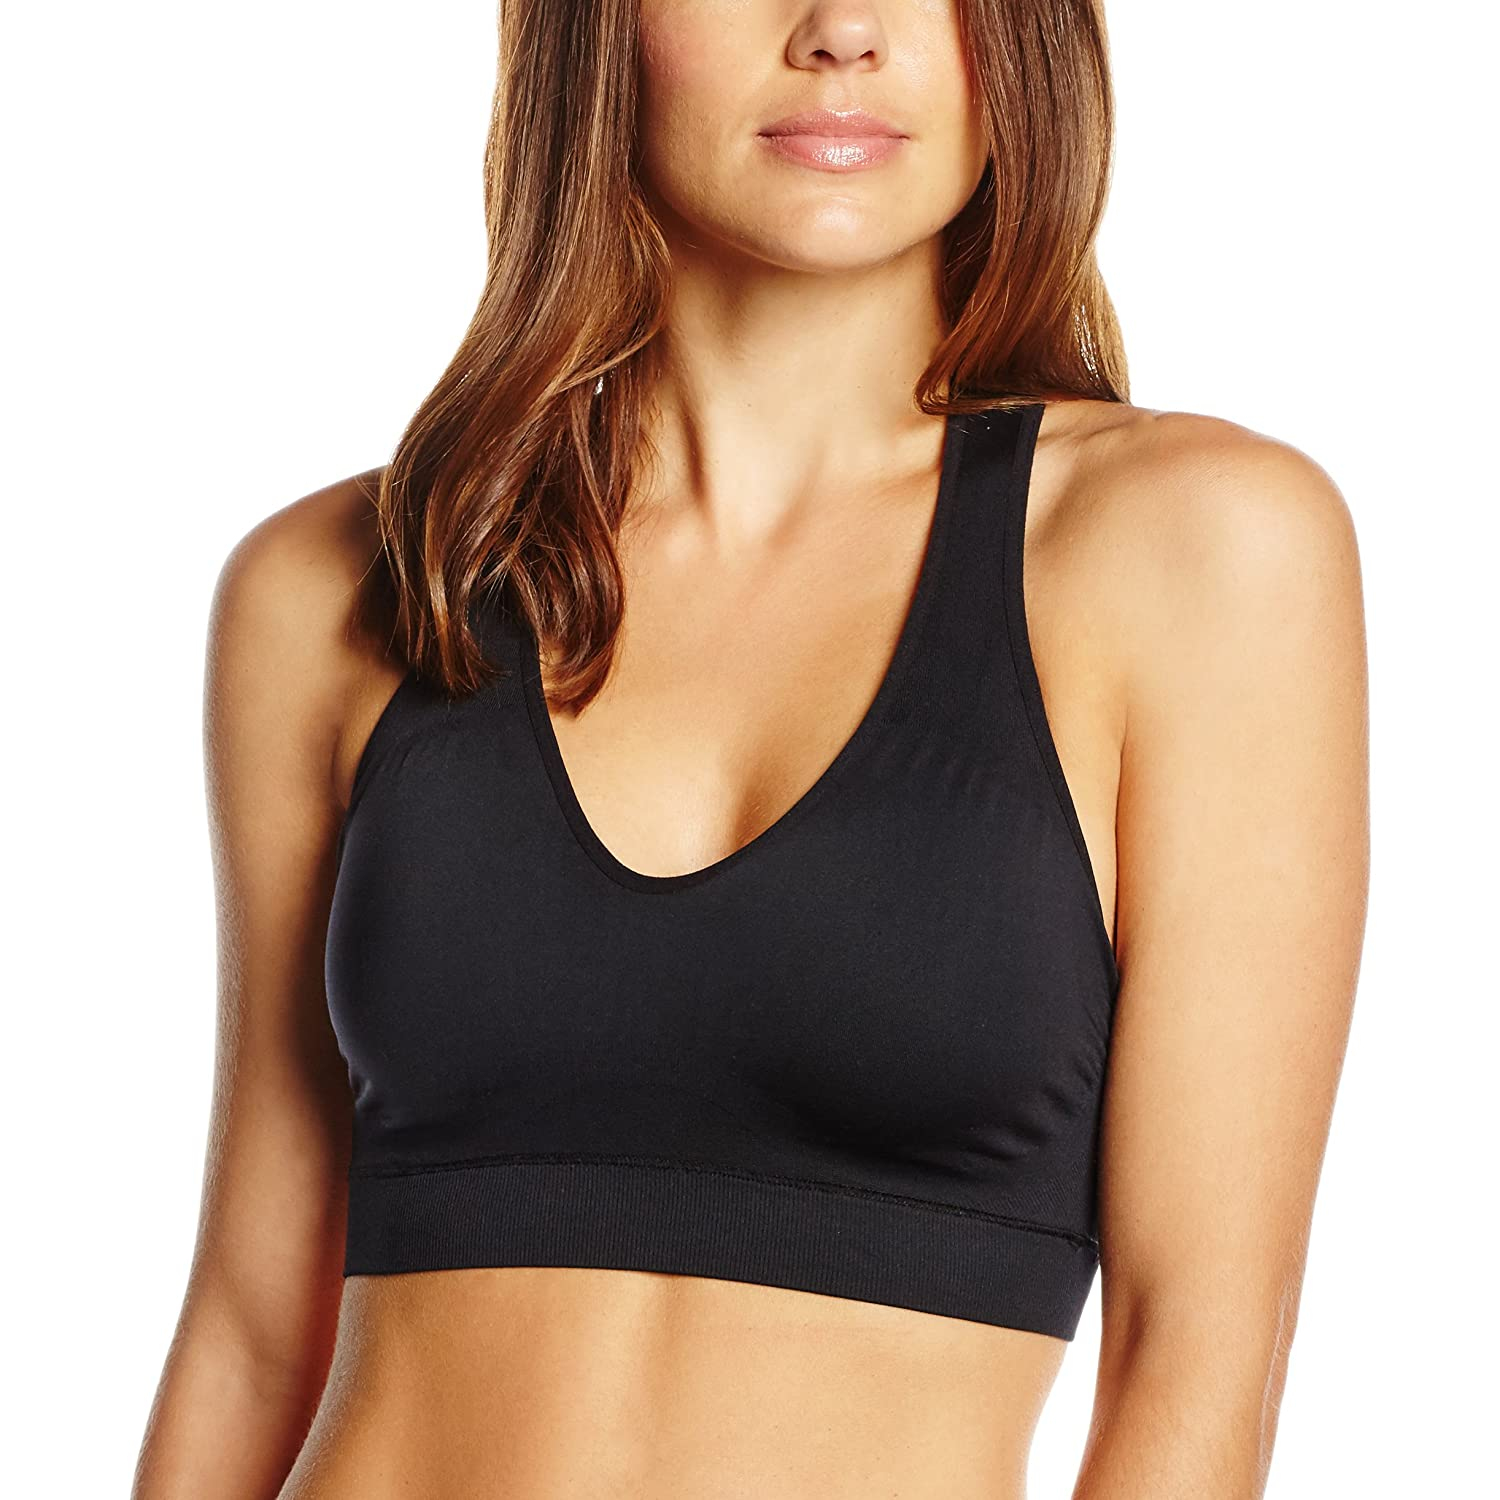 FALKE Damen Sport Bh Bra-Top Medium Support günstig